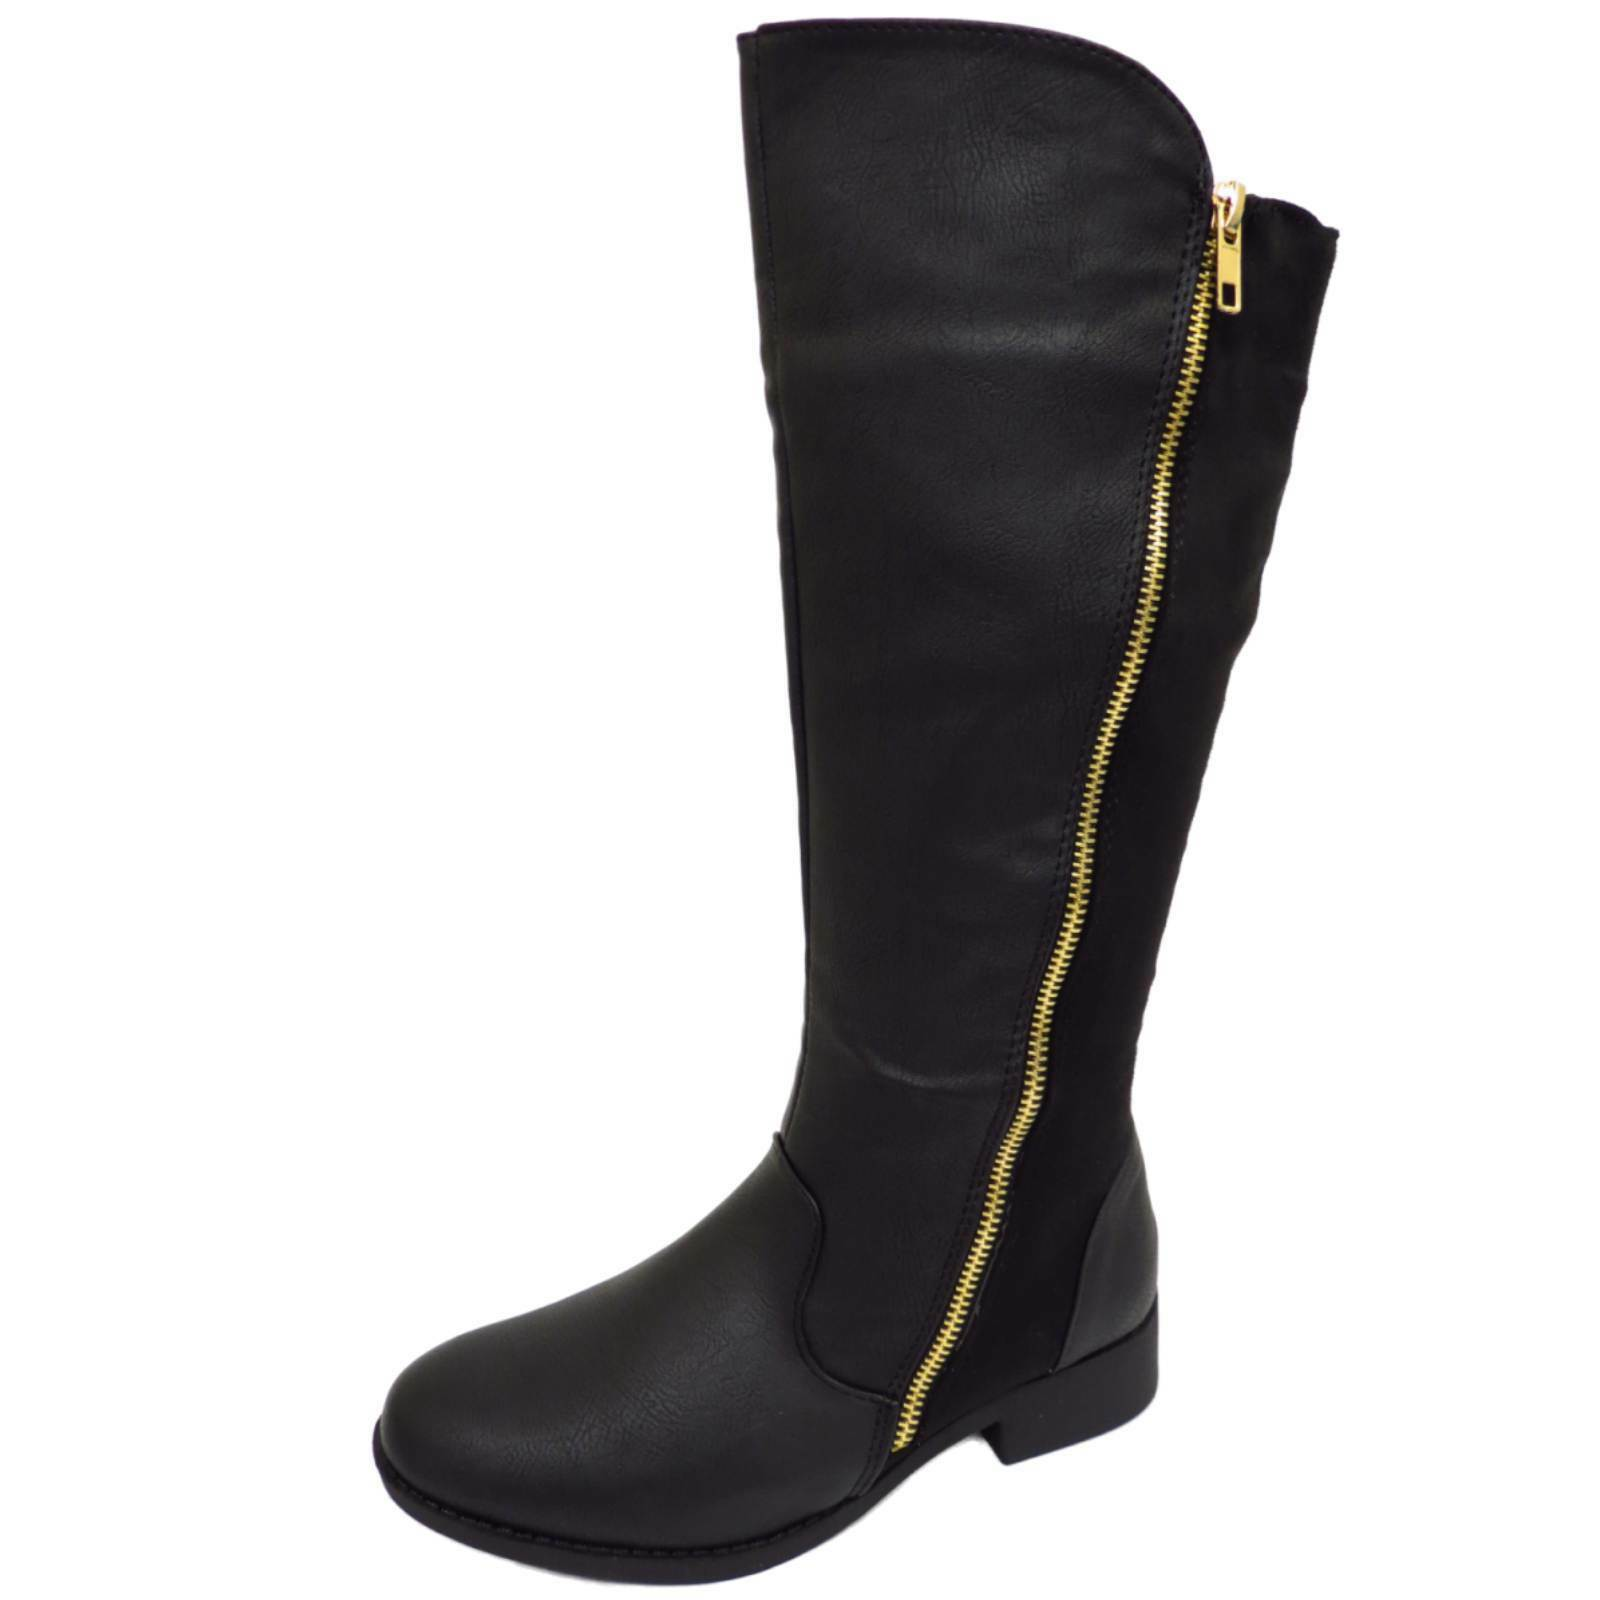 WOMENS LADIES KNEE HIGH FLAT WINTER RIDING MID CALF BUCKLE ZIP BOOTS UK SIZE 3-8